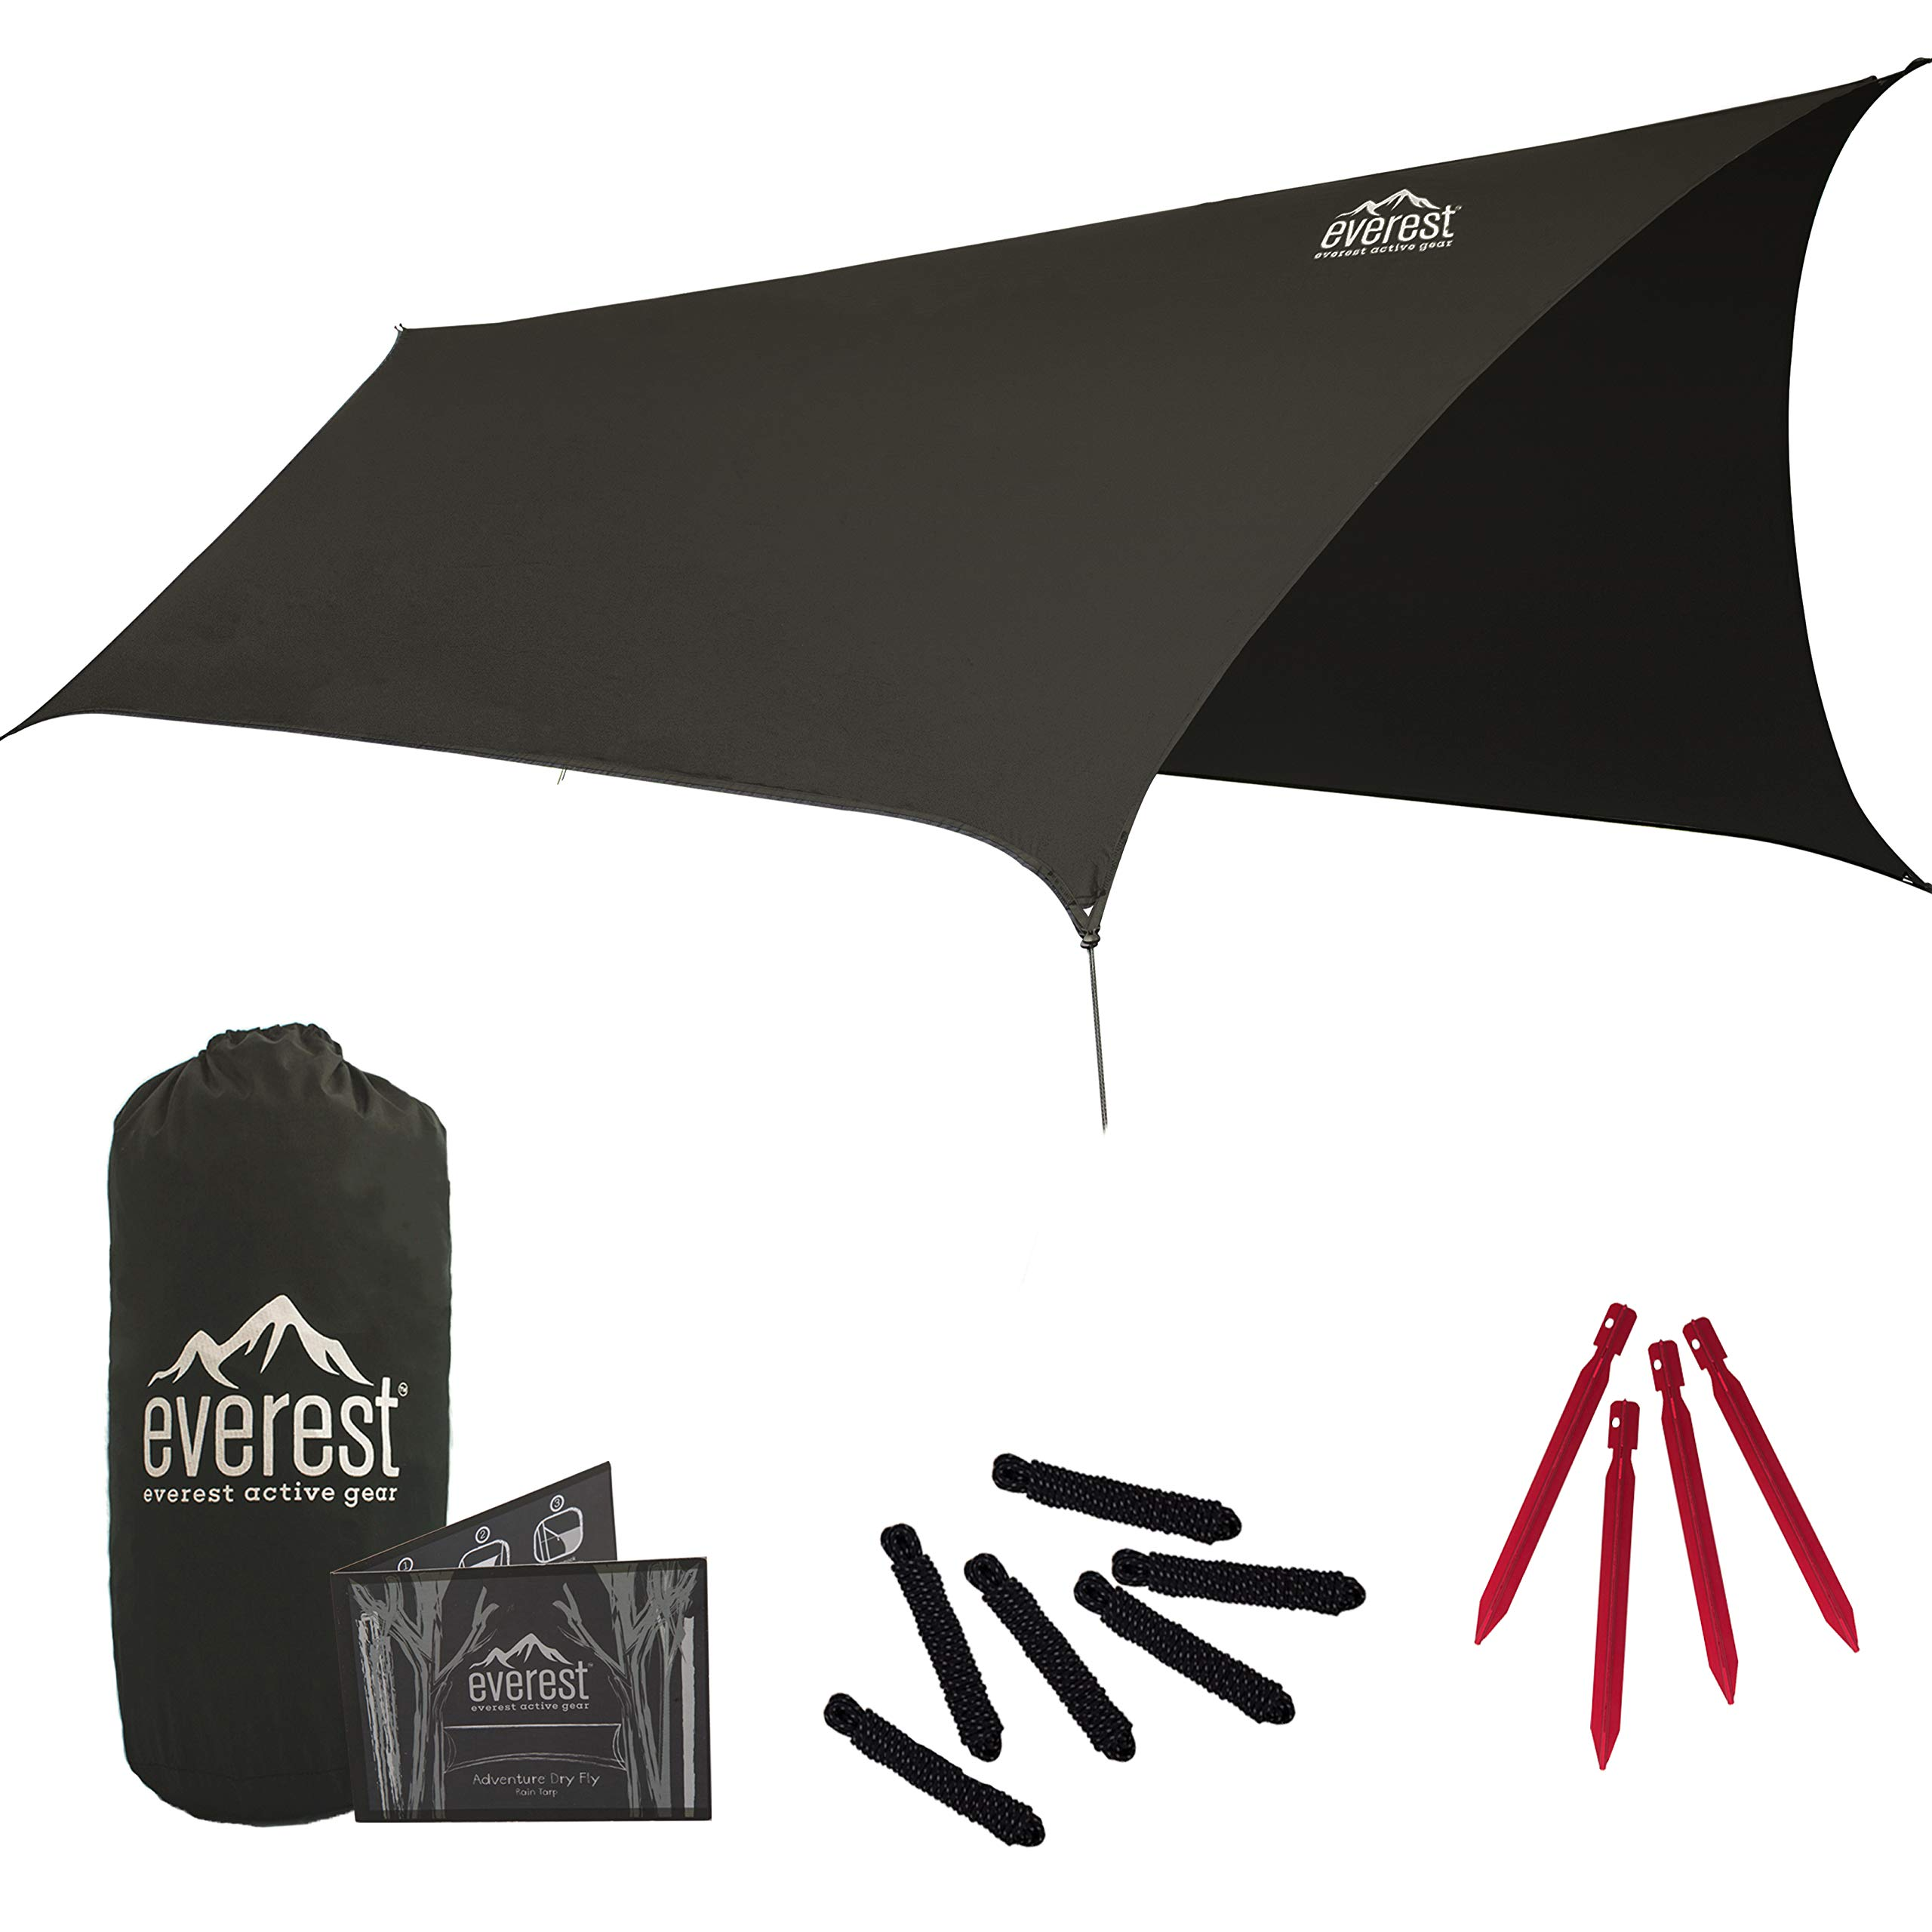 Everest Hammock Rain Fly | Waterproof Outdoor Tarp | Perfect for Camping, Backpacking, Tents, Hammocks, and More | Ripstop Nylon | Lightweight Aluminum Stakes Included- Gray by everest active gear